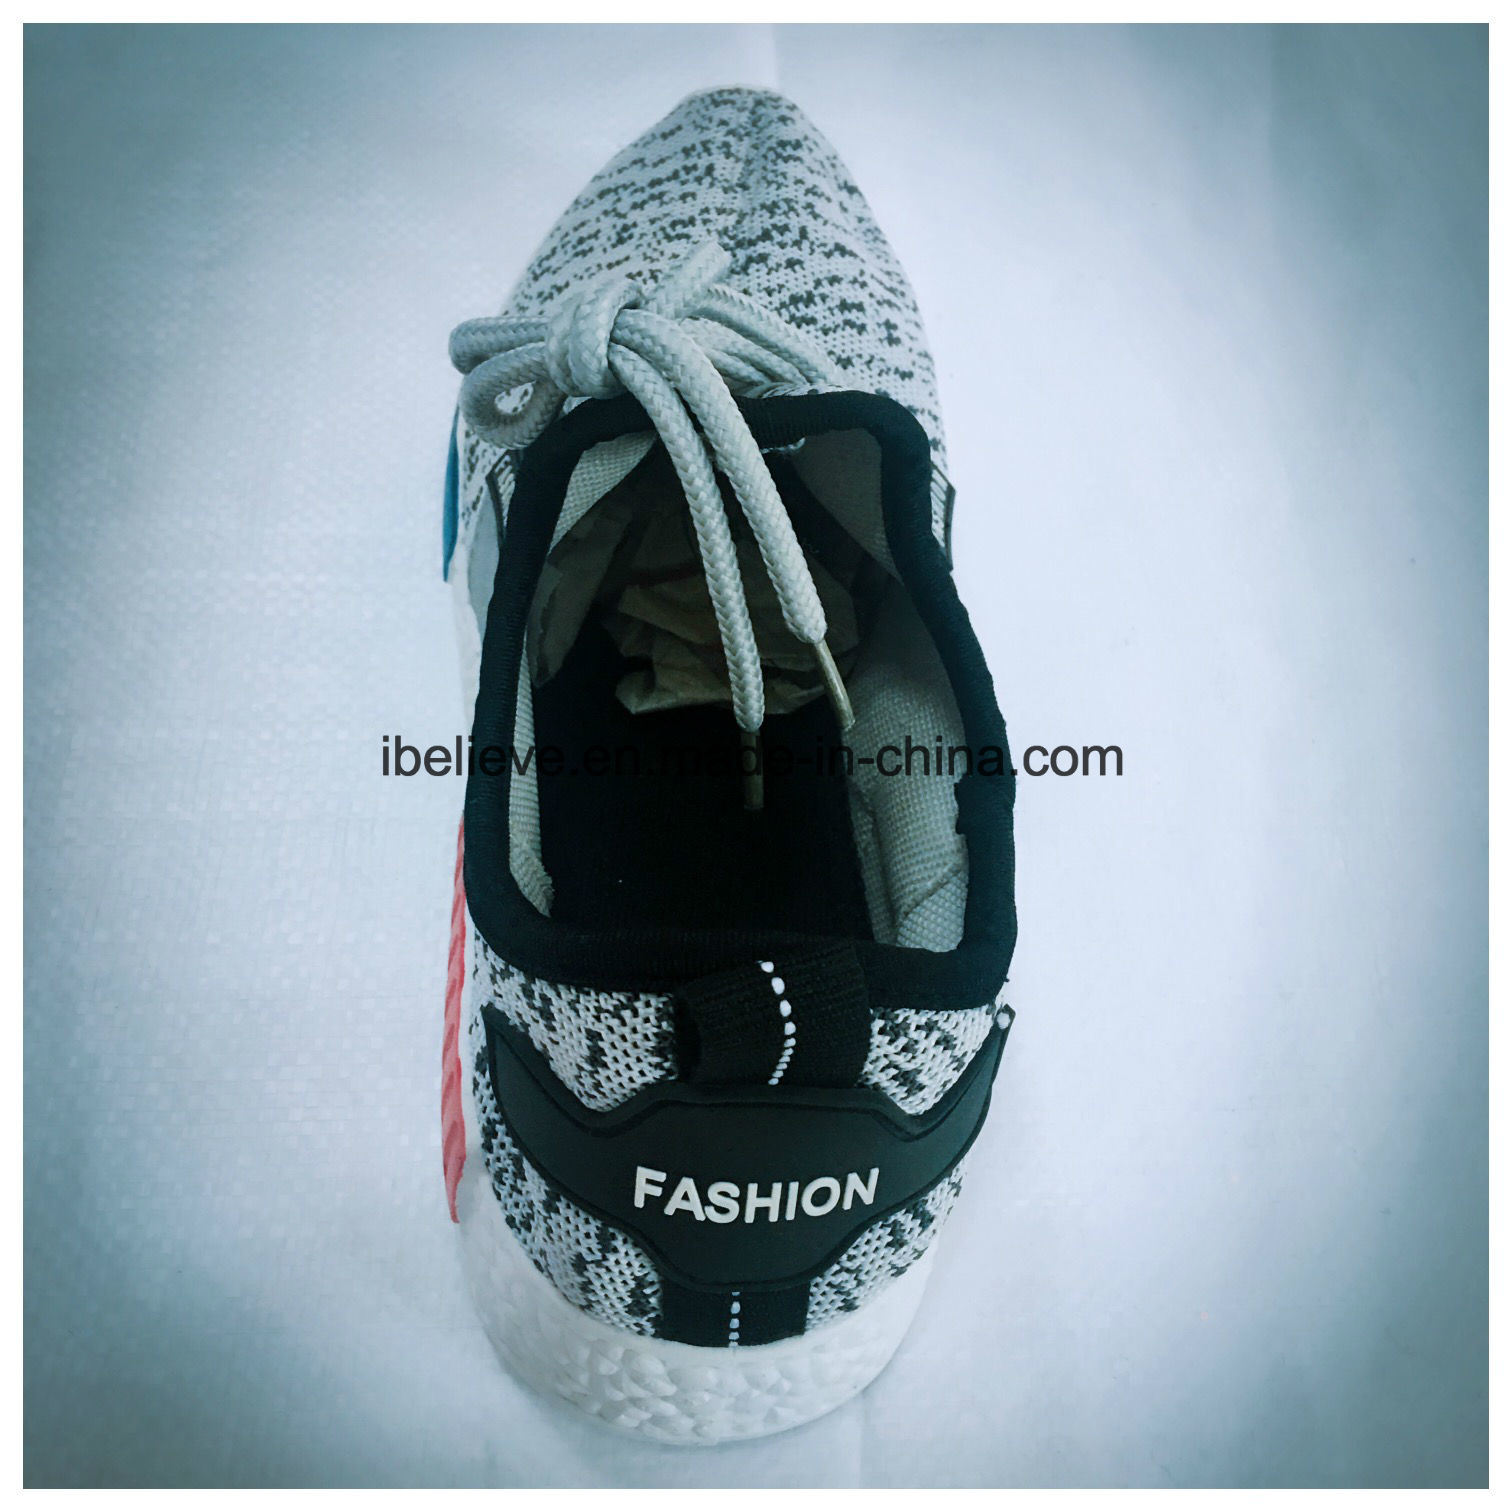 New Style Sport Shoes with PVC Sole Comfortable to Walk